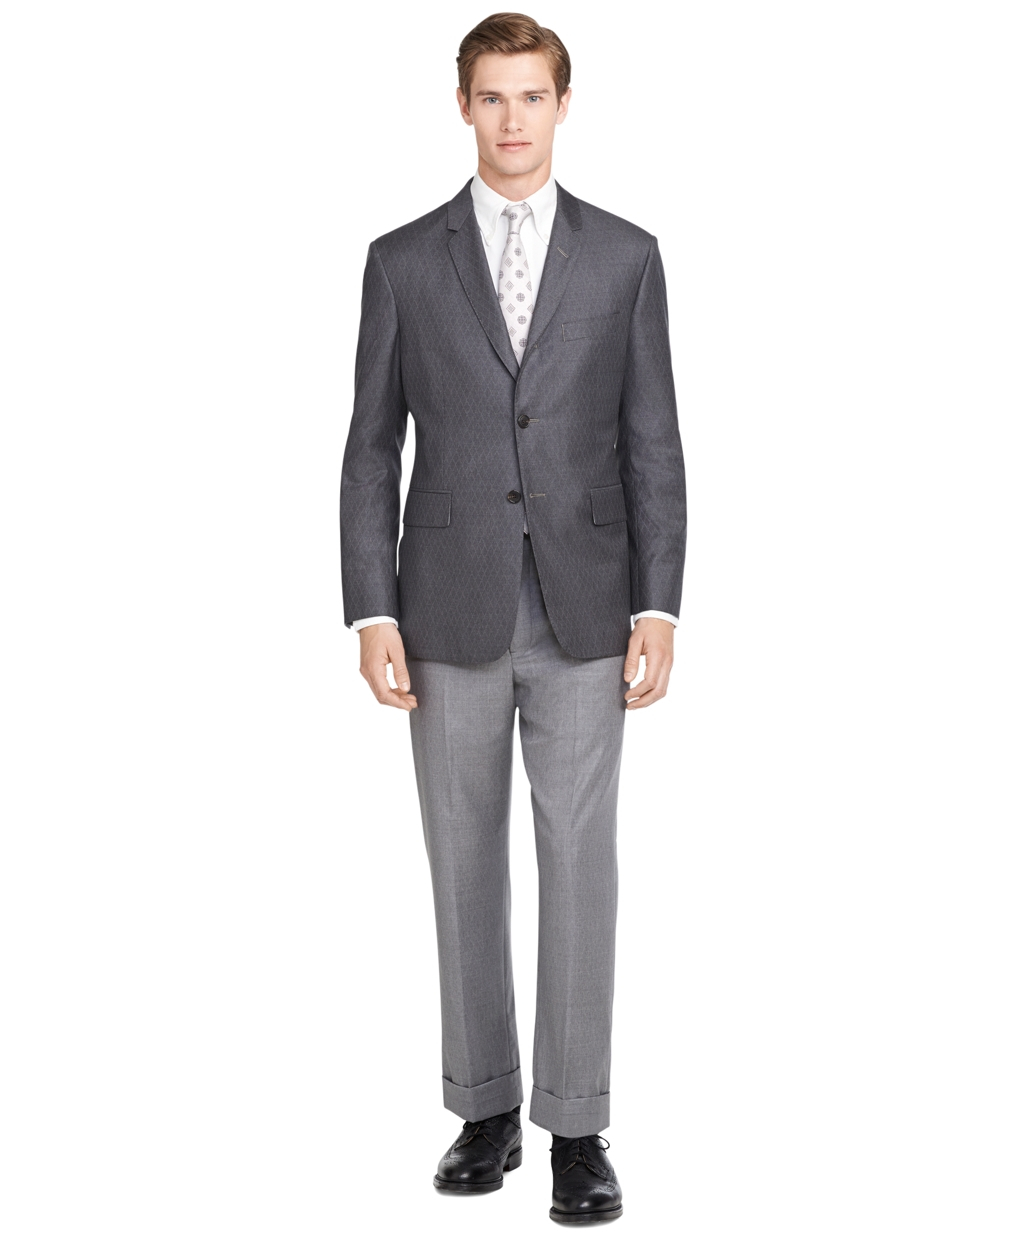 Images of Grey Sports Coat - Reikian